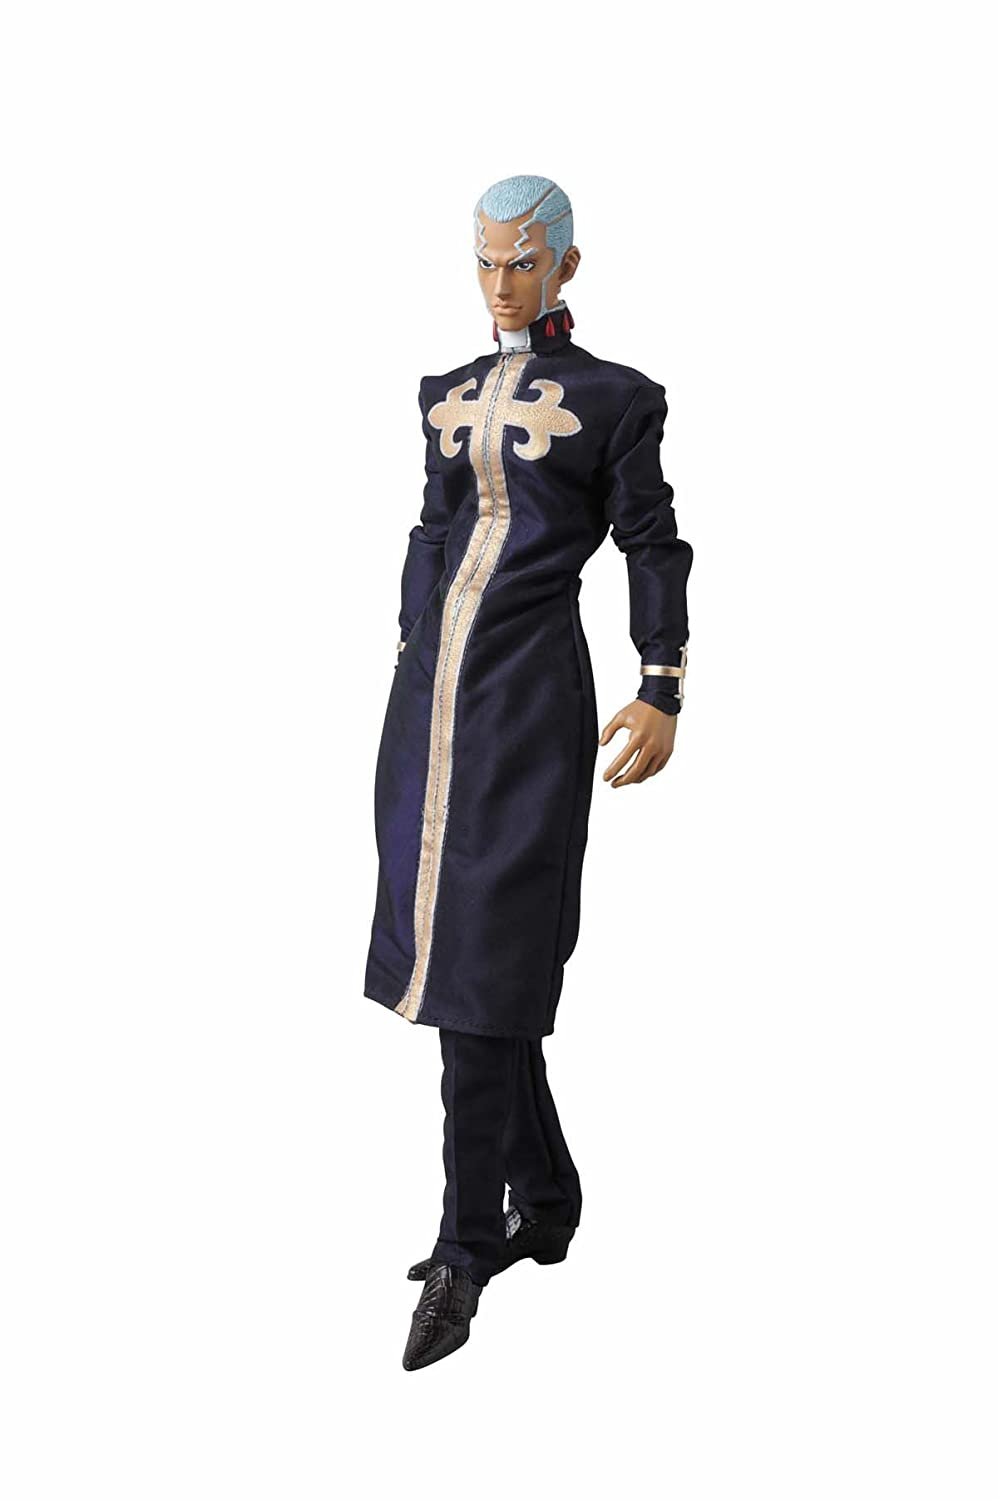 Real Action Heroes JoJo's Bizarre Adventure Enrico Pucci